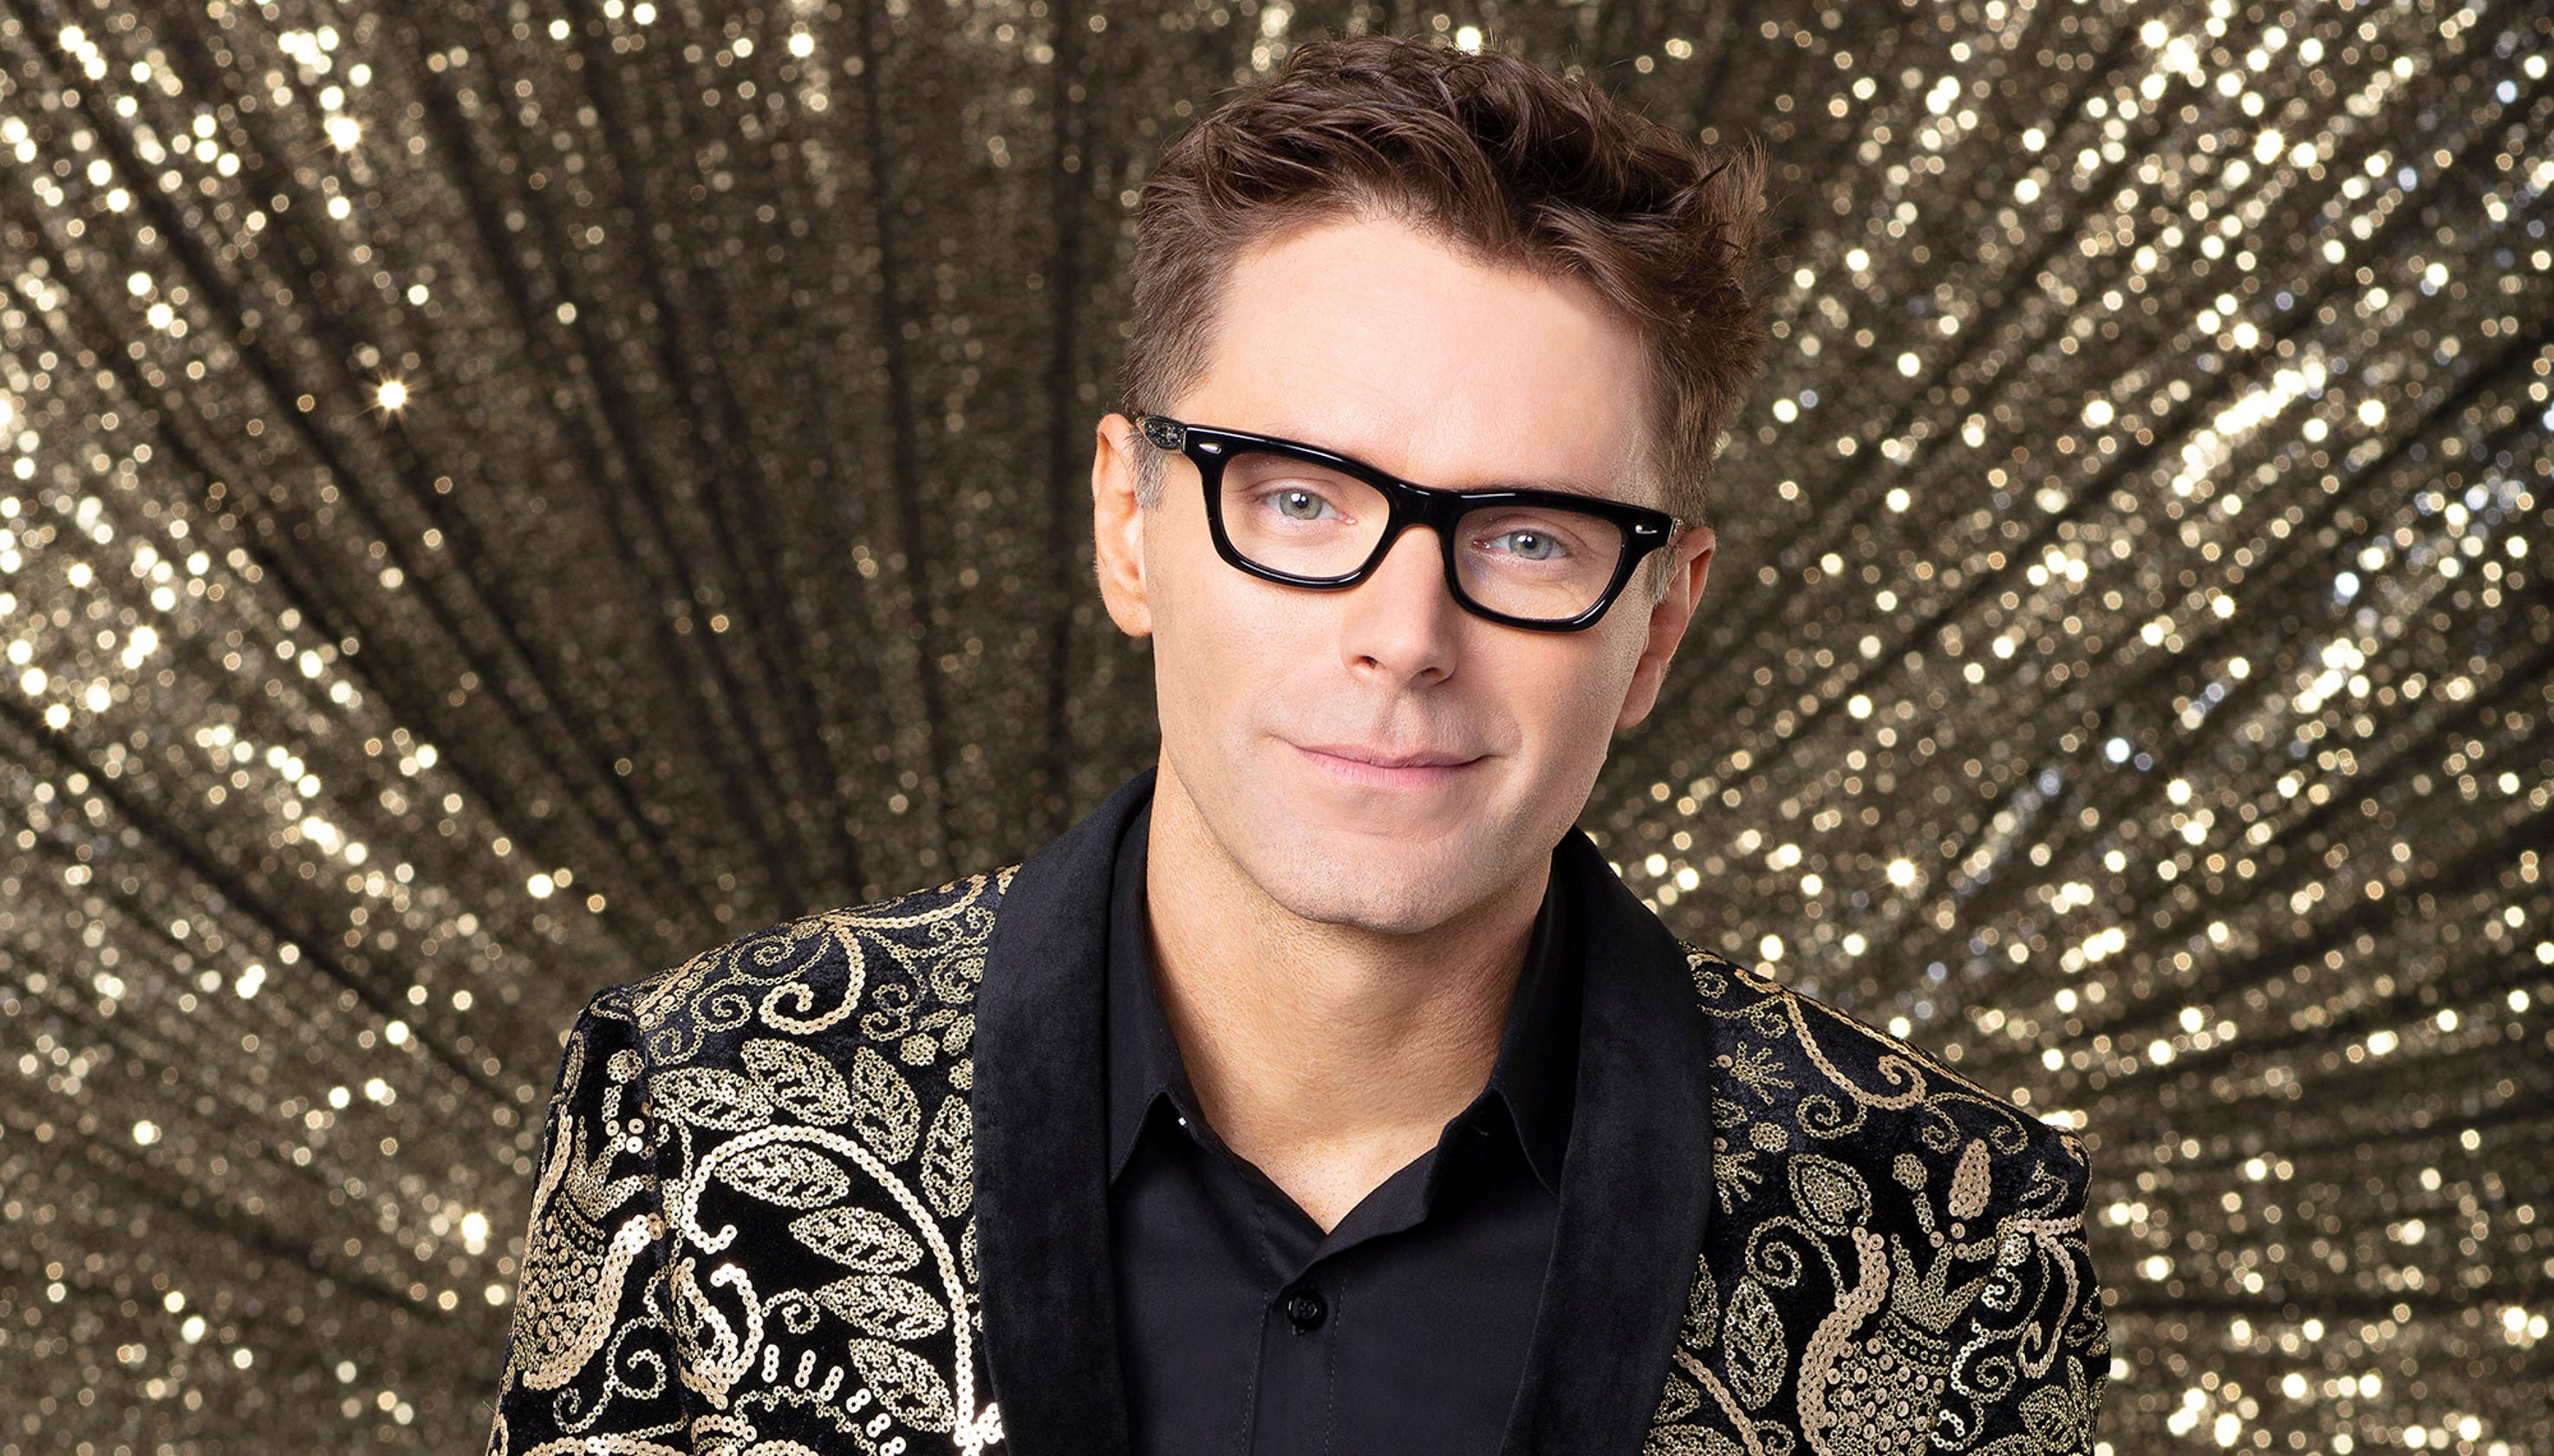 'Dancing With the Stars' finals: Can Bobby Bones shock the world?